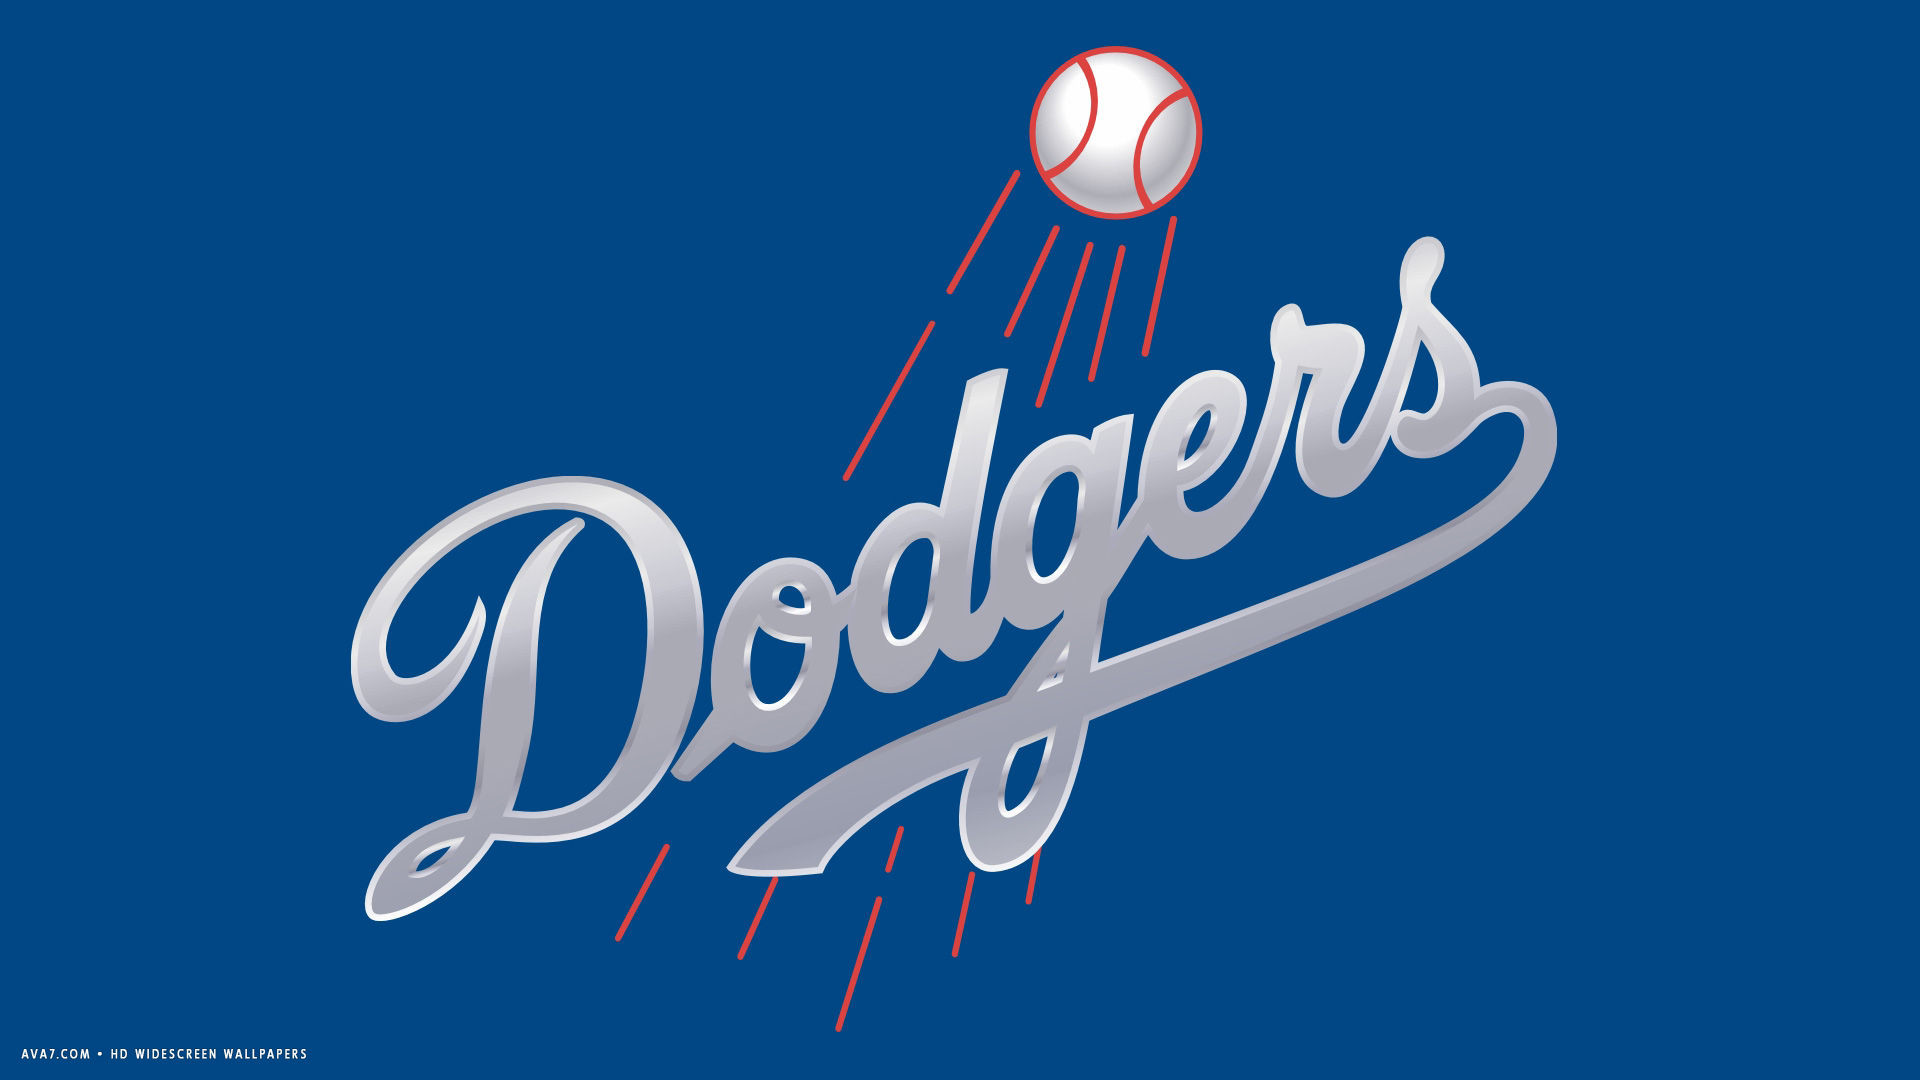 1920x1080 los angeles dodgers mlb baseball team hd widescreen wallpaper